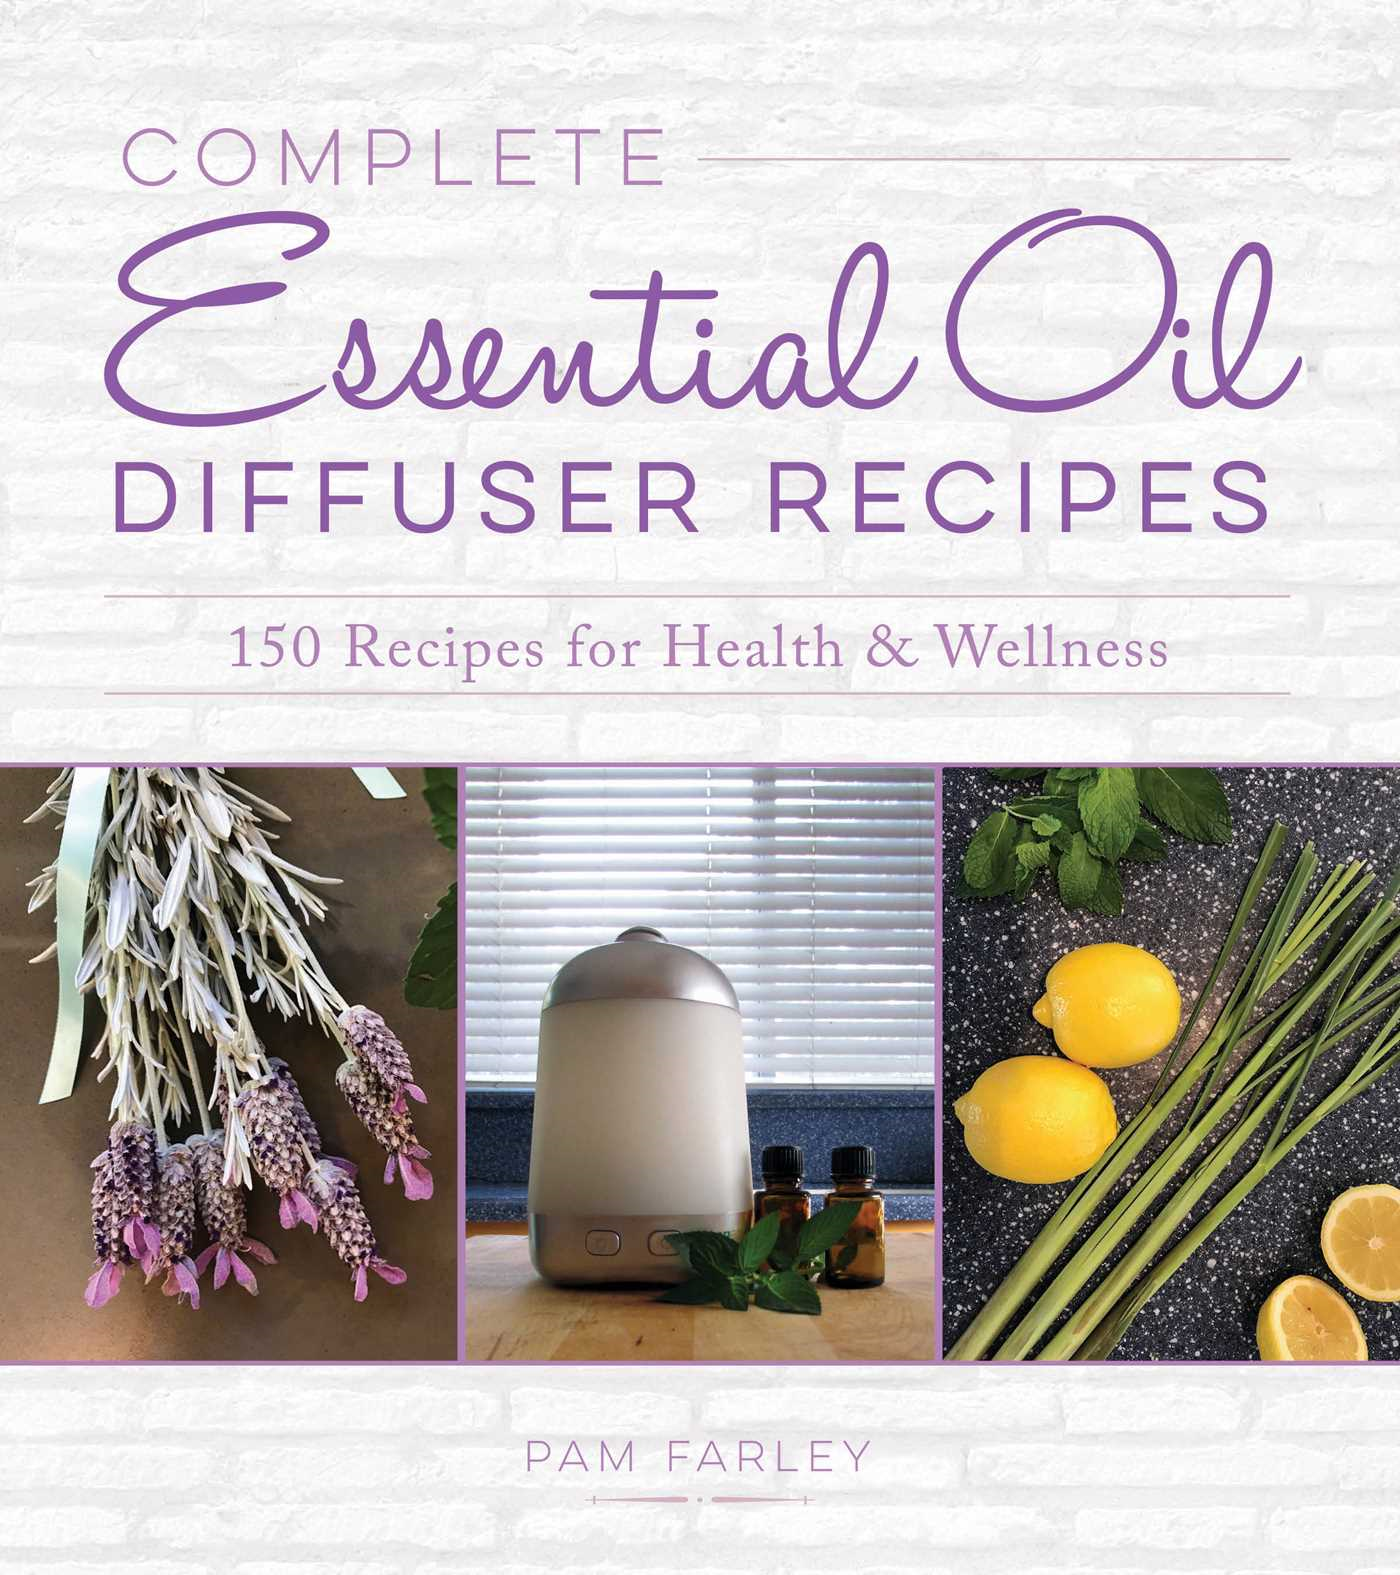 Complete Essential Oil Diffuser Recipes